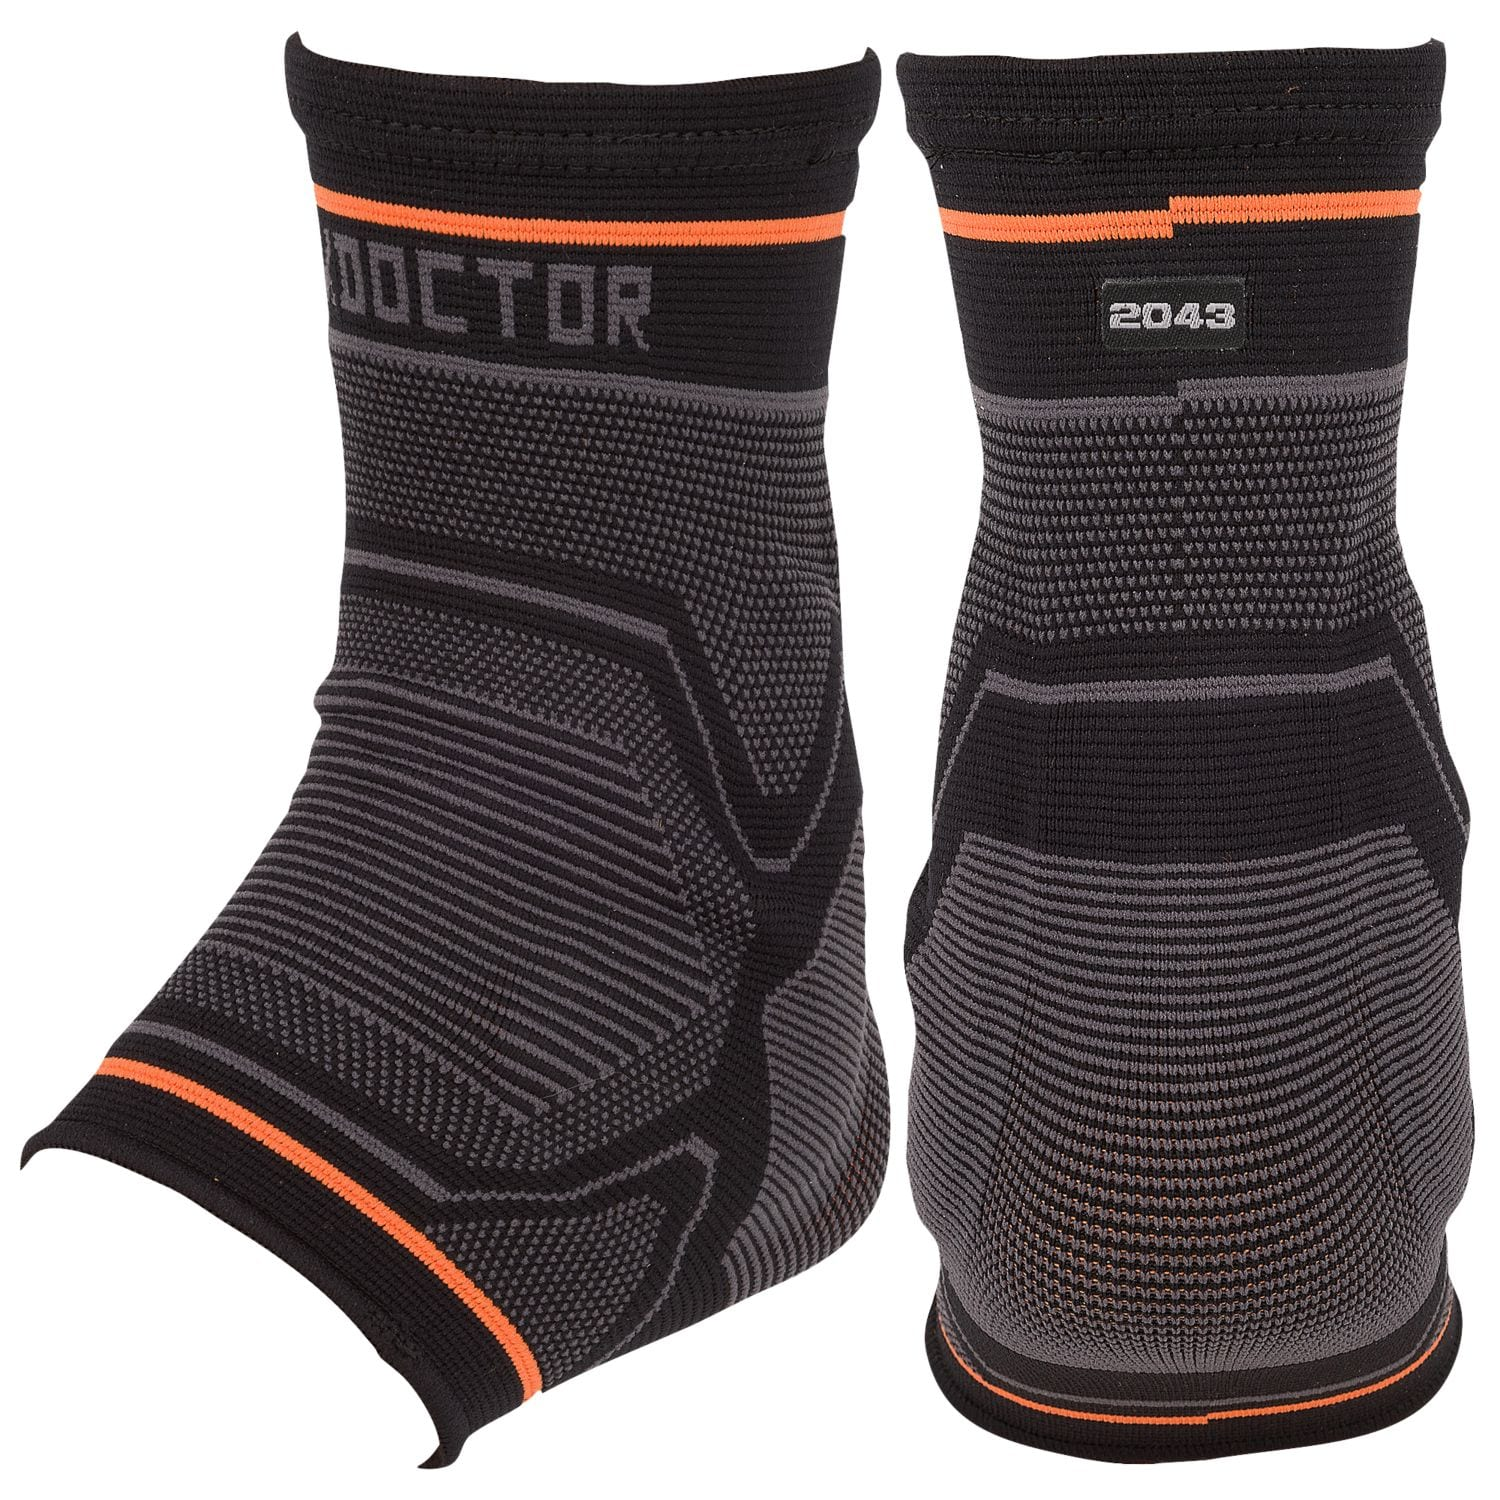 204334 Shock Doctor Compression Knit Ankle Sleeve w/Gel Support - Large MAIN